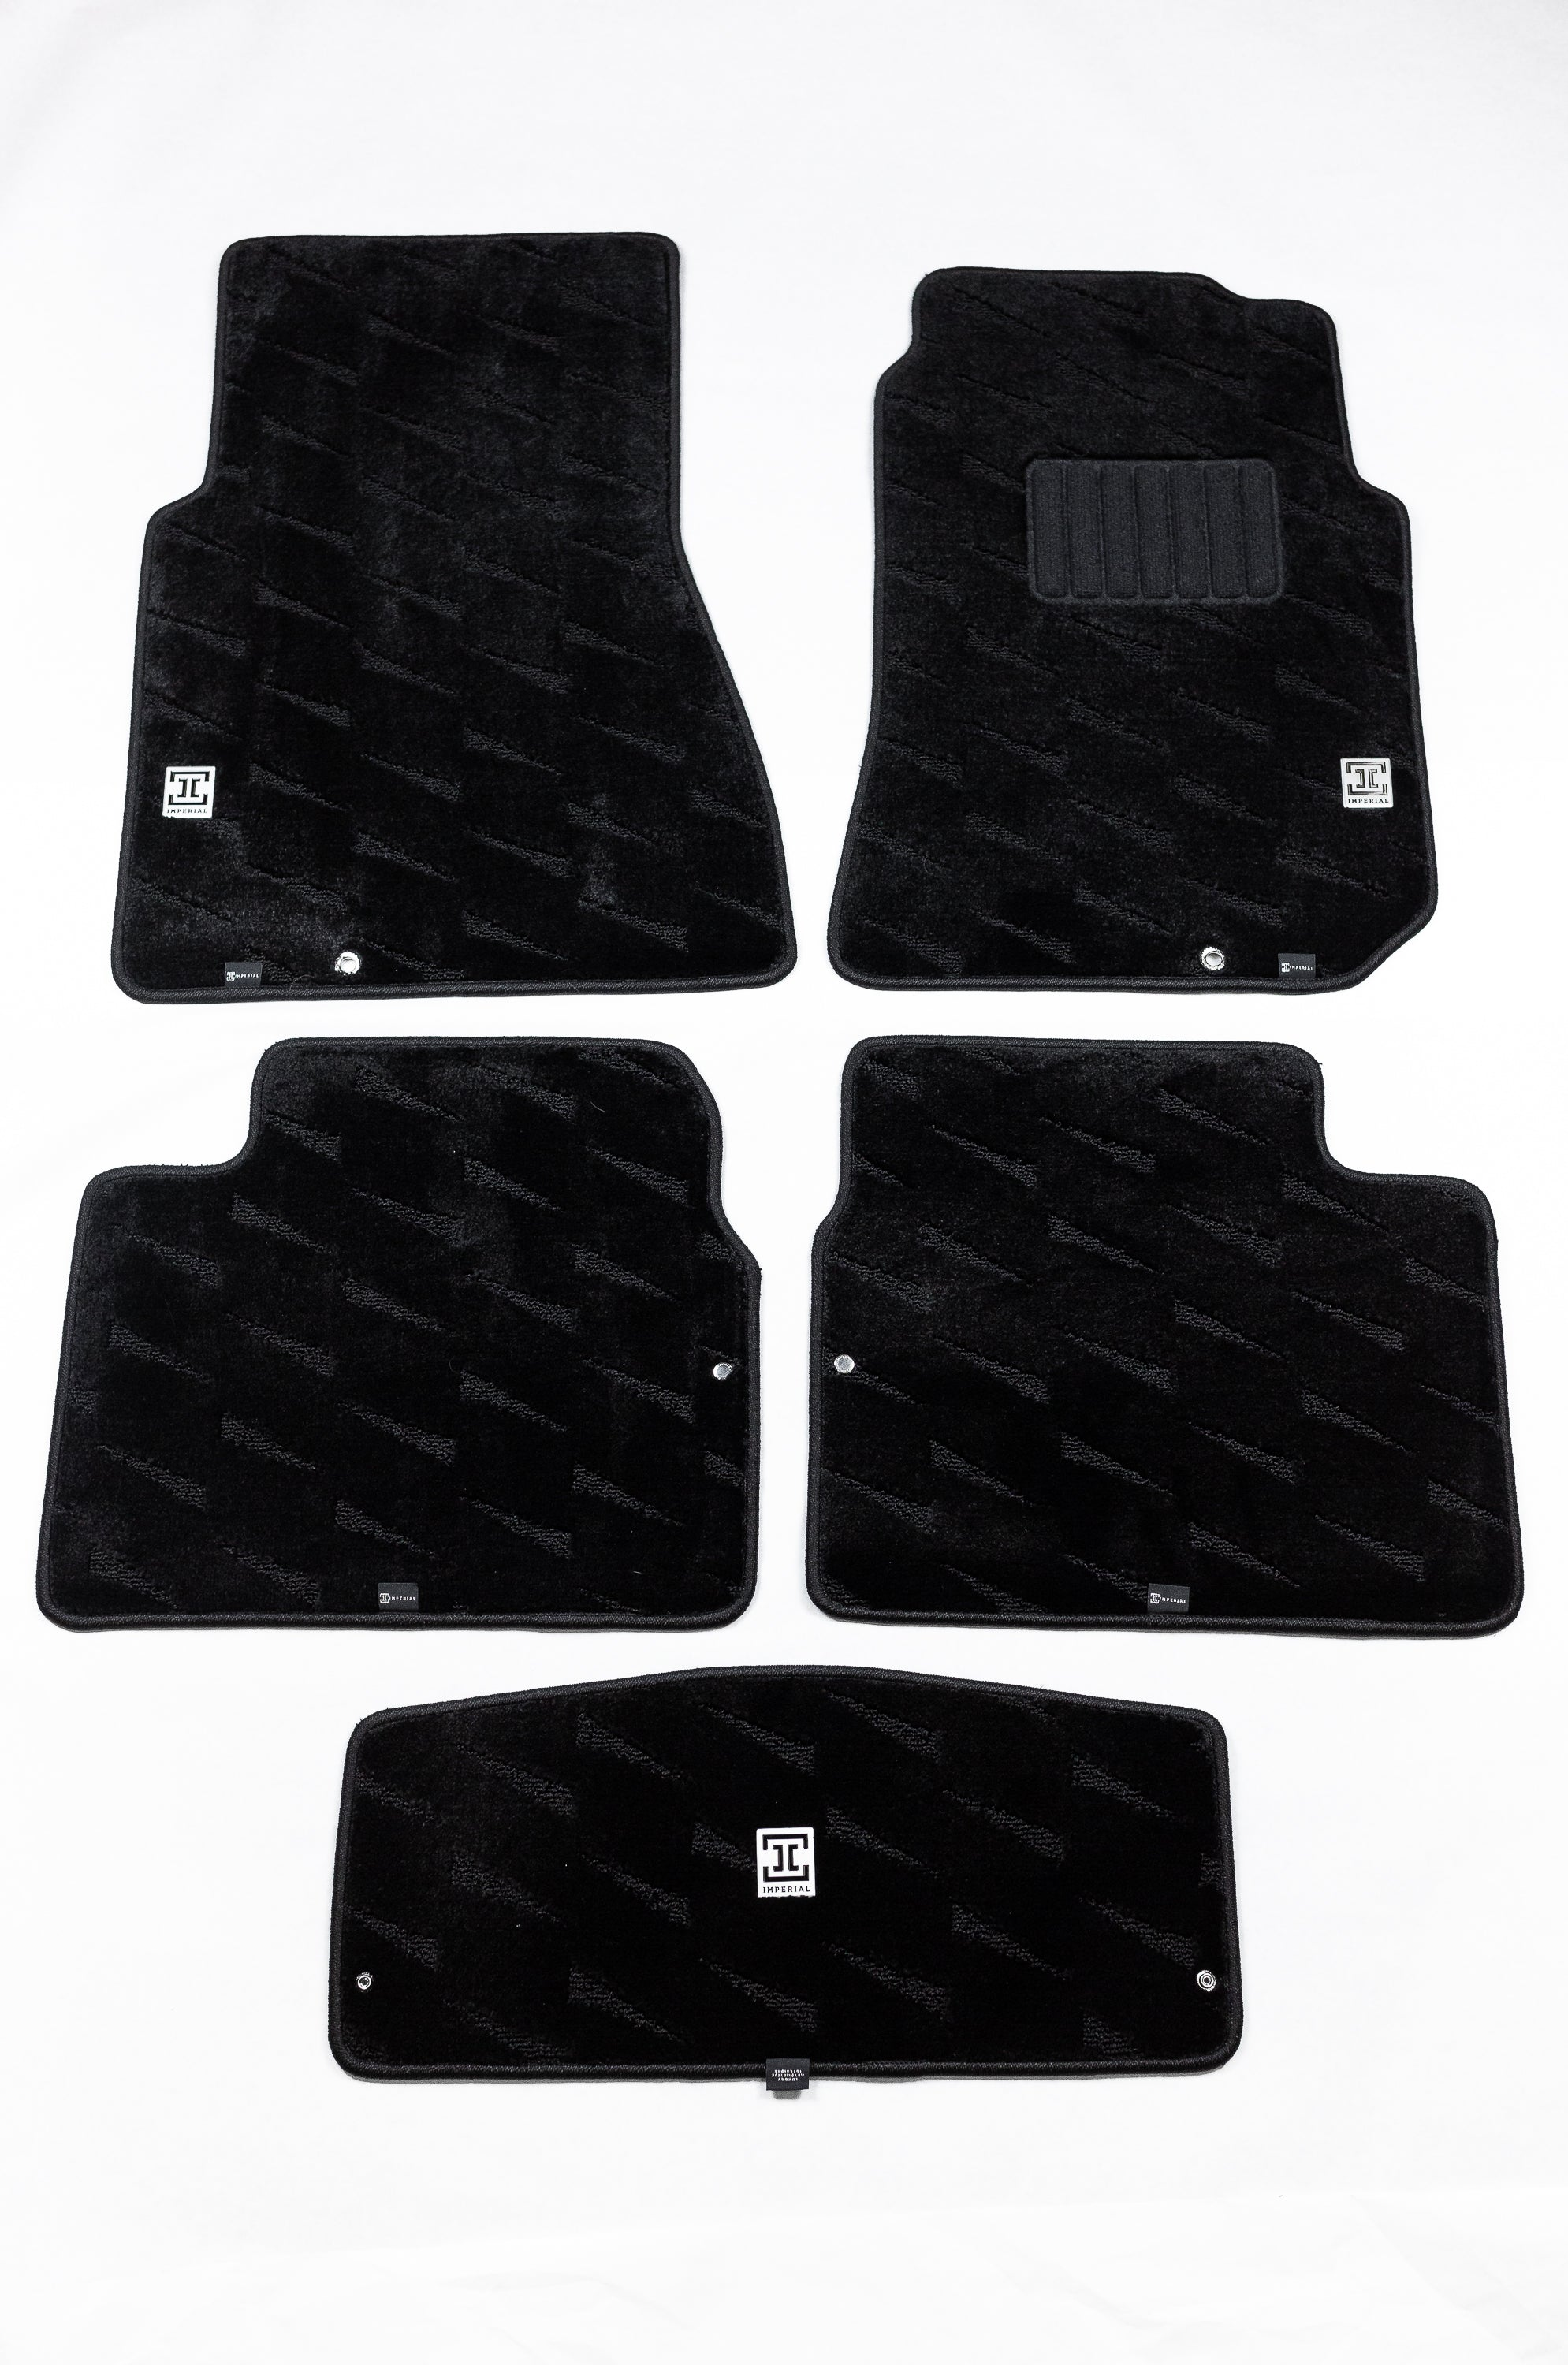 Imperial 1989-1994 Nissan Skyline R32 GT-R and GTS-4 5 Piece Floor Mats Set (AWD Models Only)